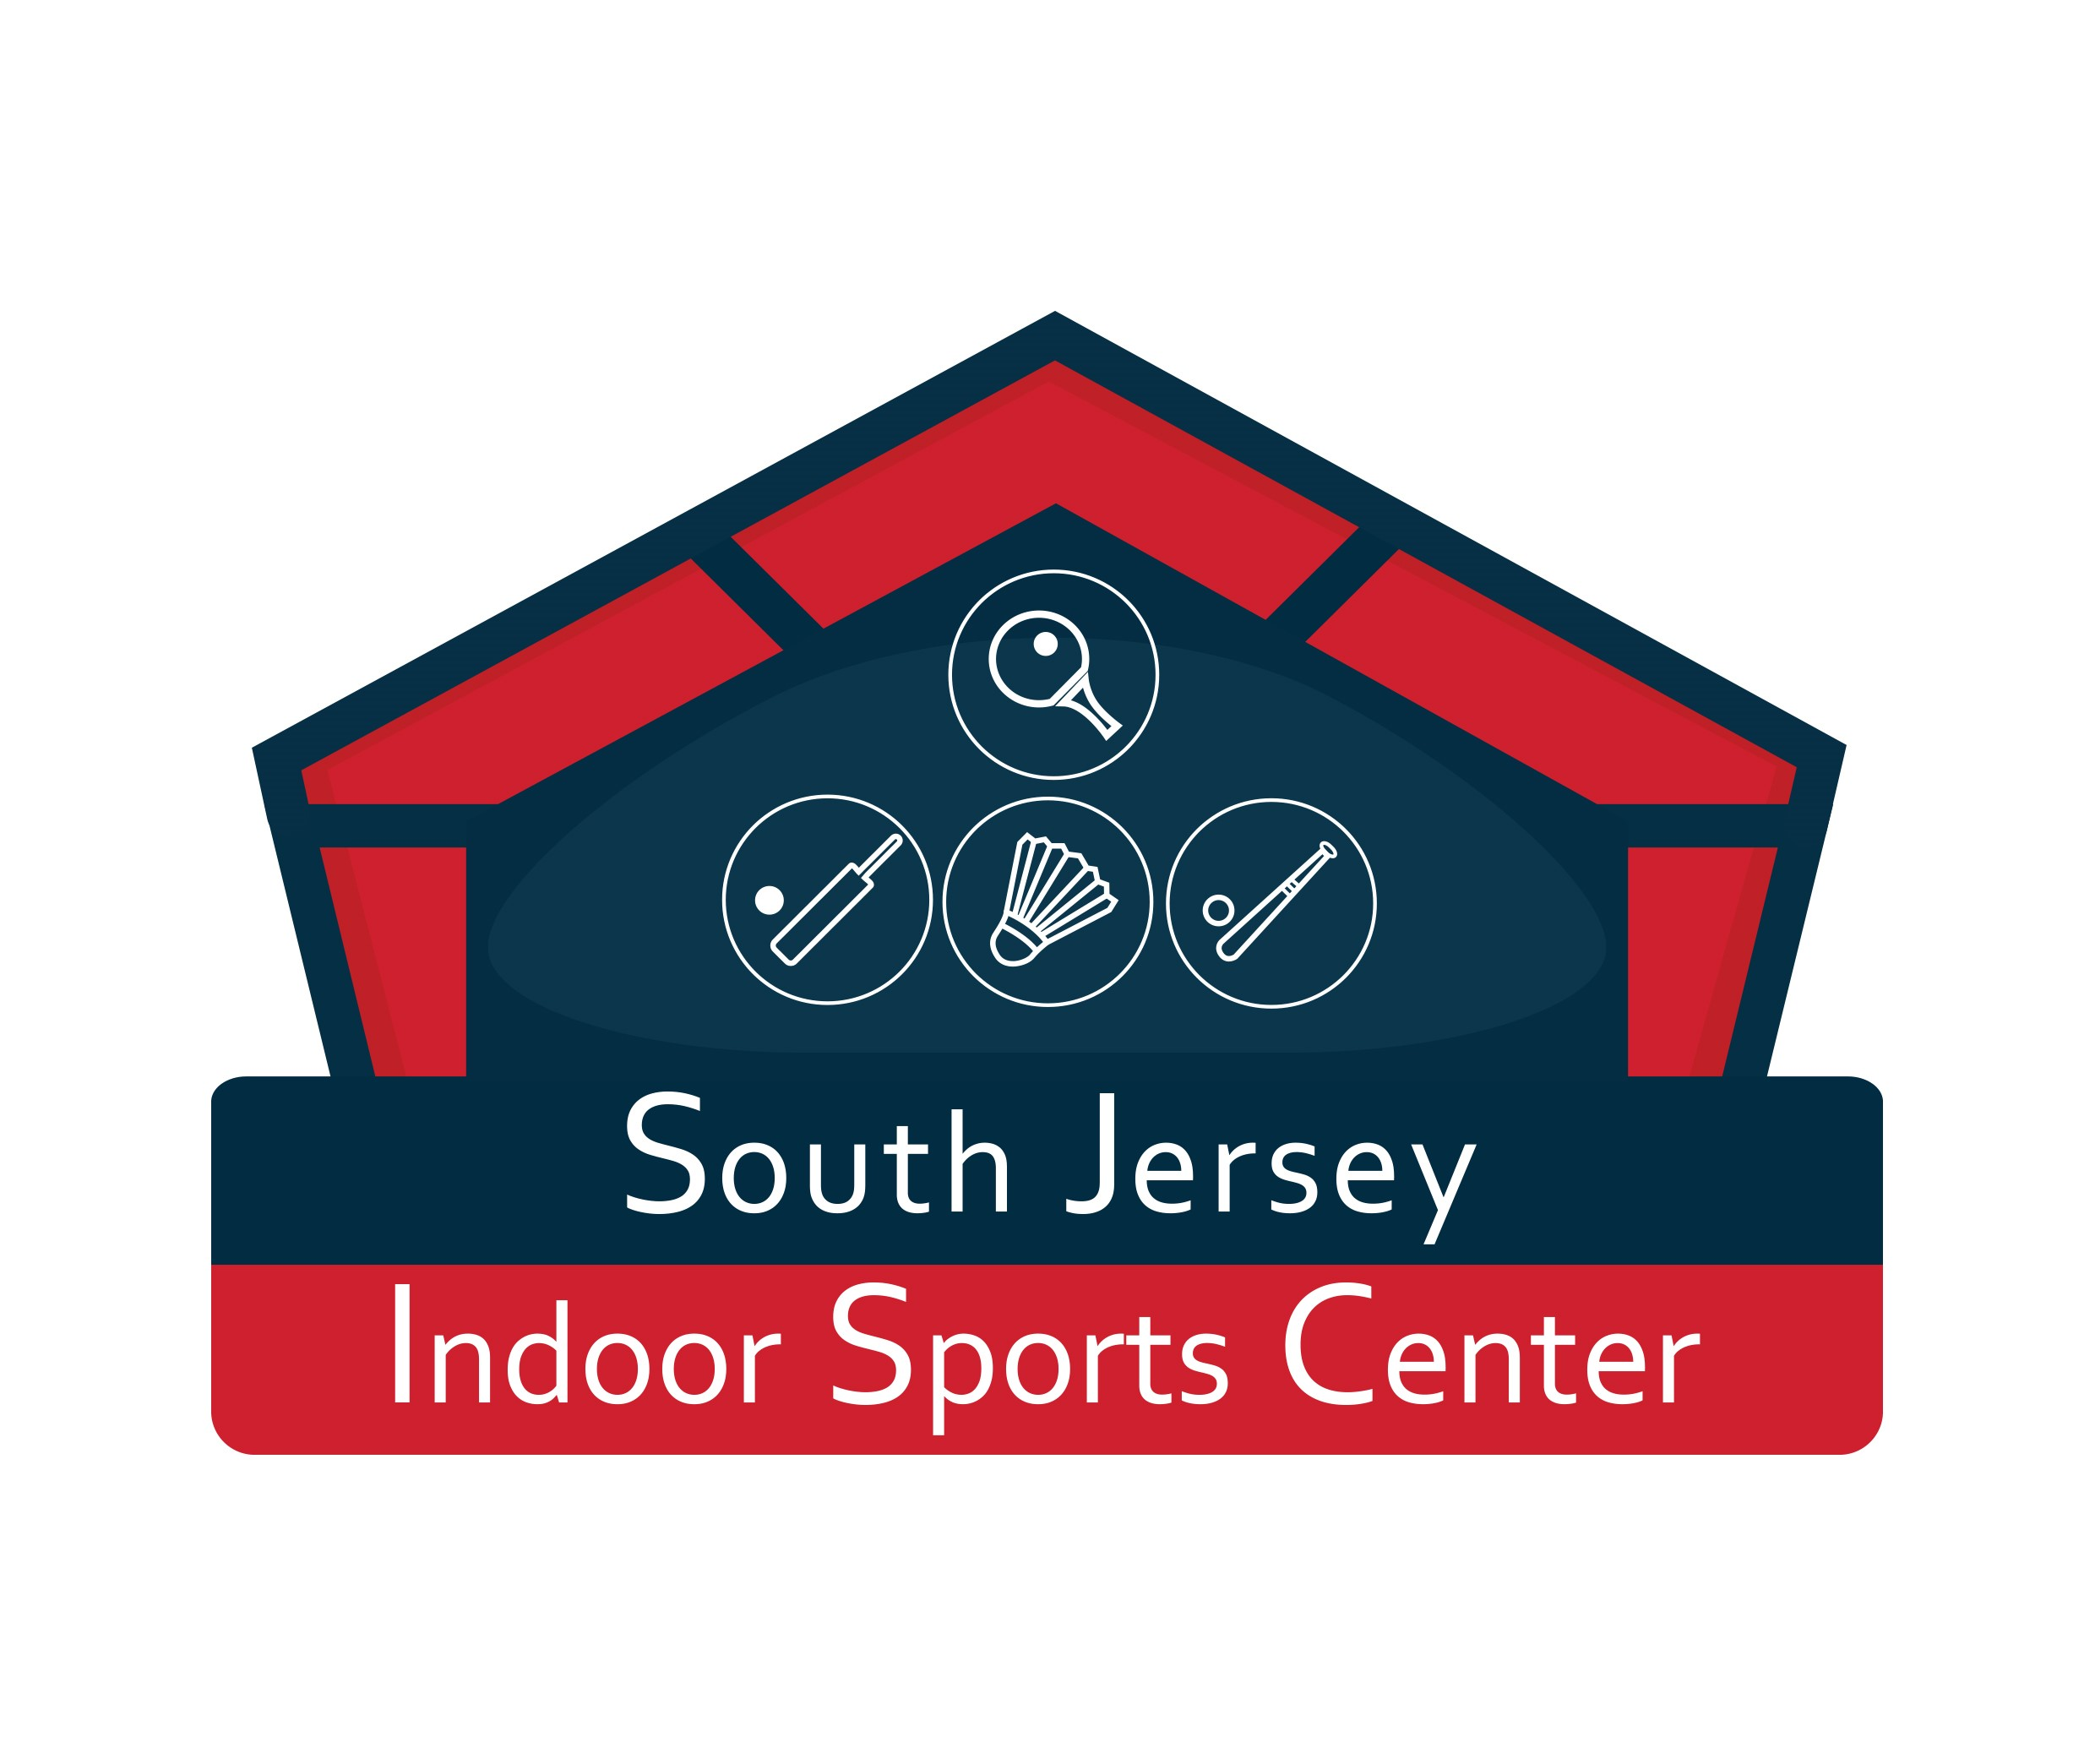 South Jersey Indoor Sports Center